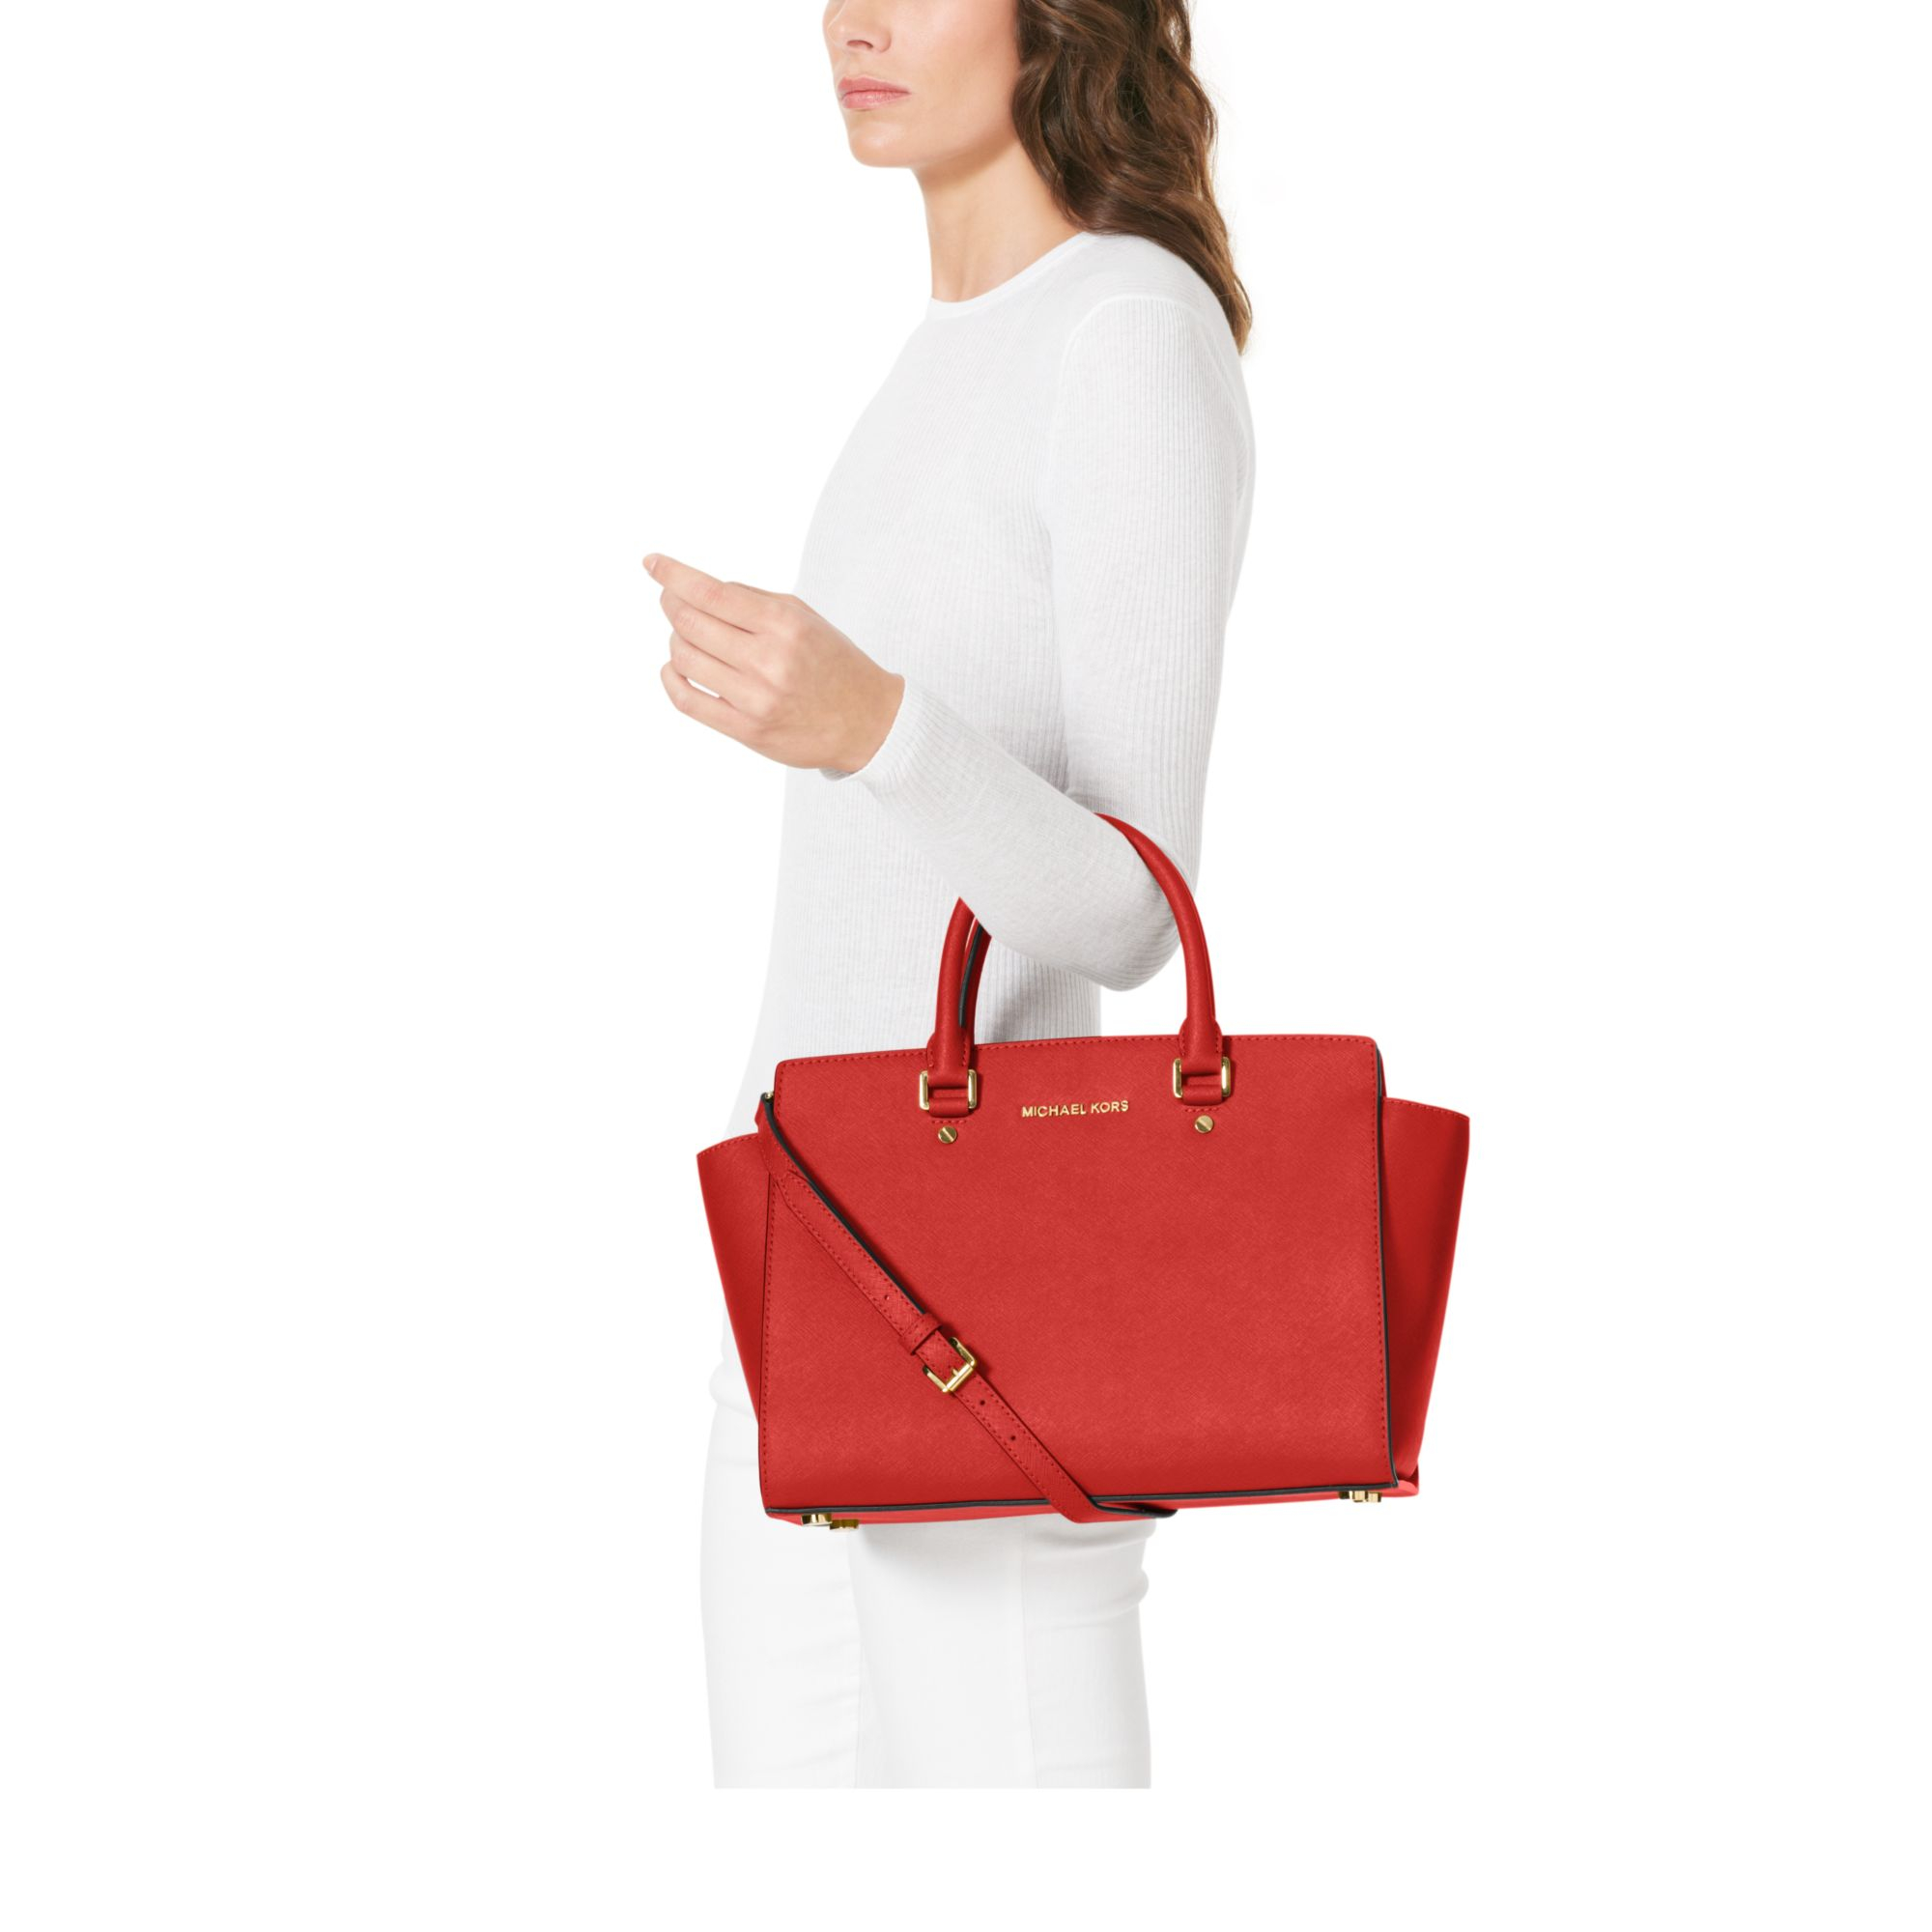 e1e45a970196 Michael Kors Selma Large Saffiano Leather Satchel in Red - Lyst